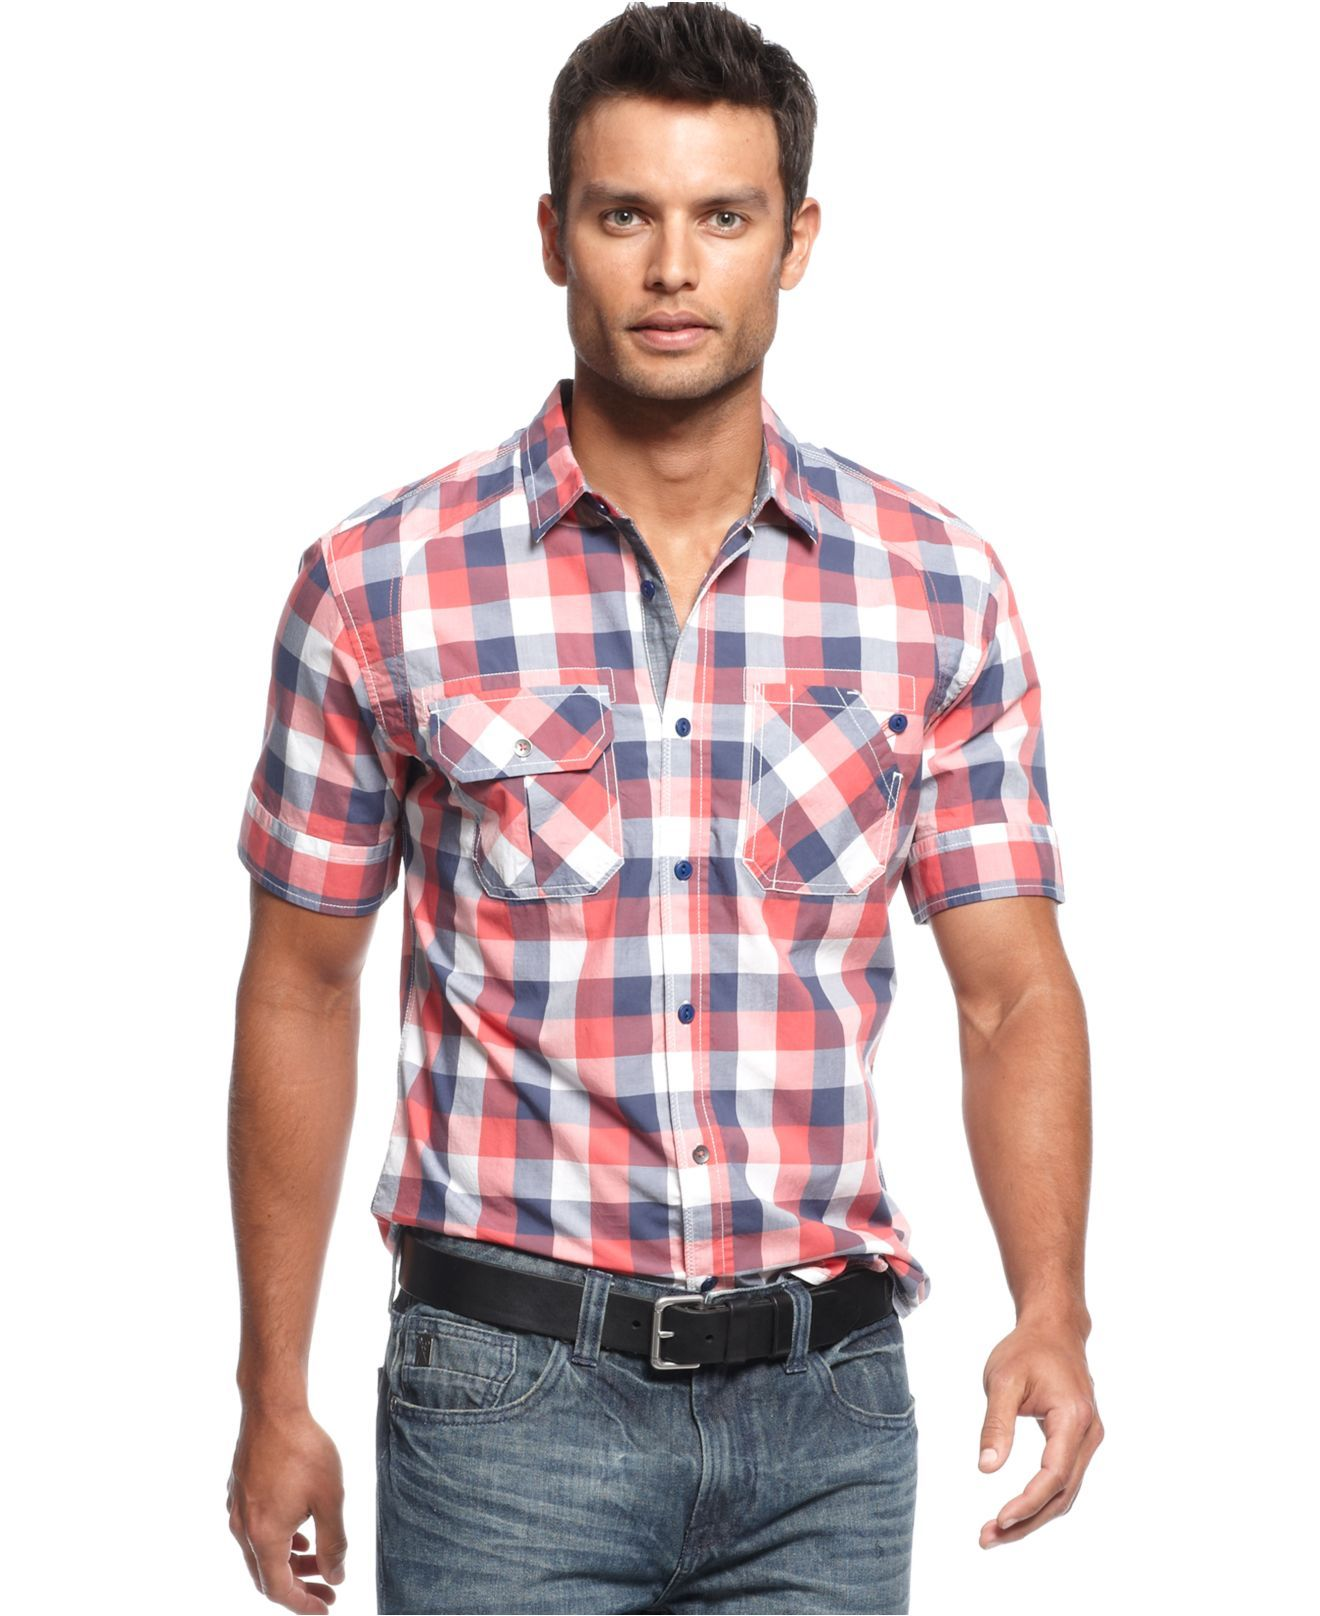 Marc ecko cut sew shirt short sleeve plaid shirt mens Short sleeve plaid shirts